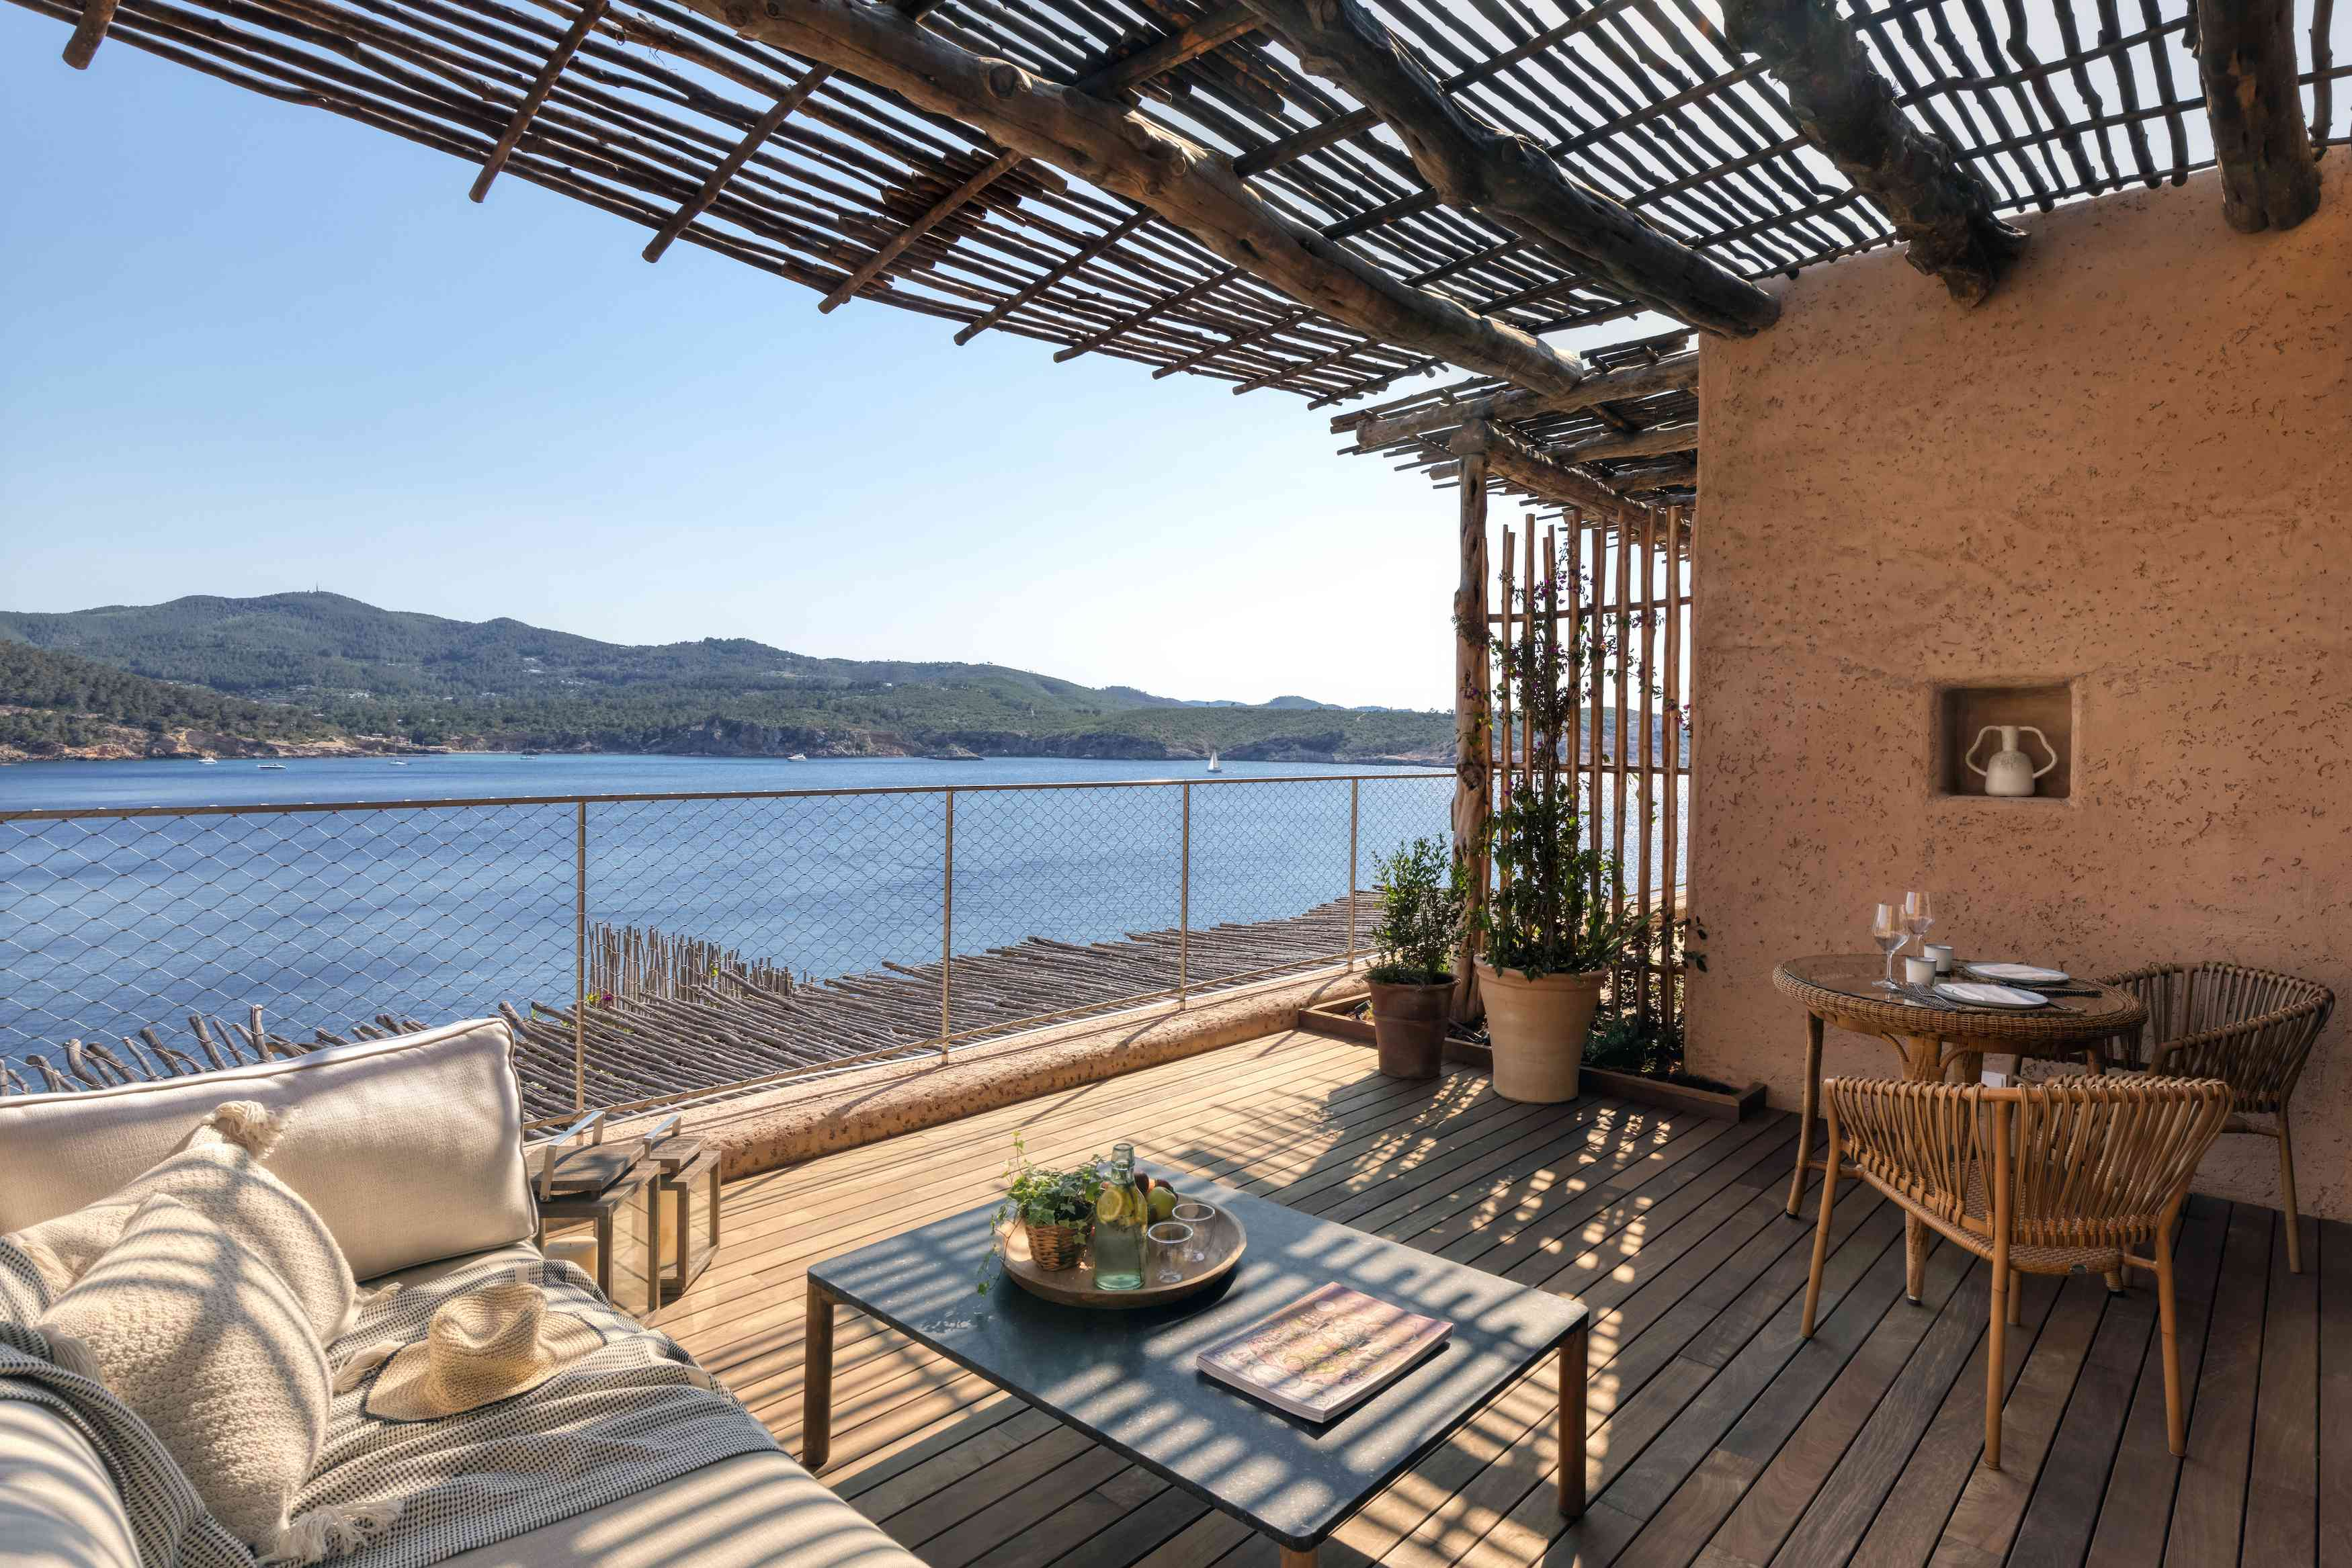 Views from a suite overlooking the water from Six Sense in Ibiza